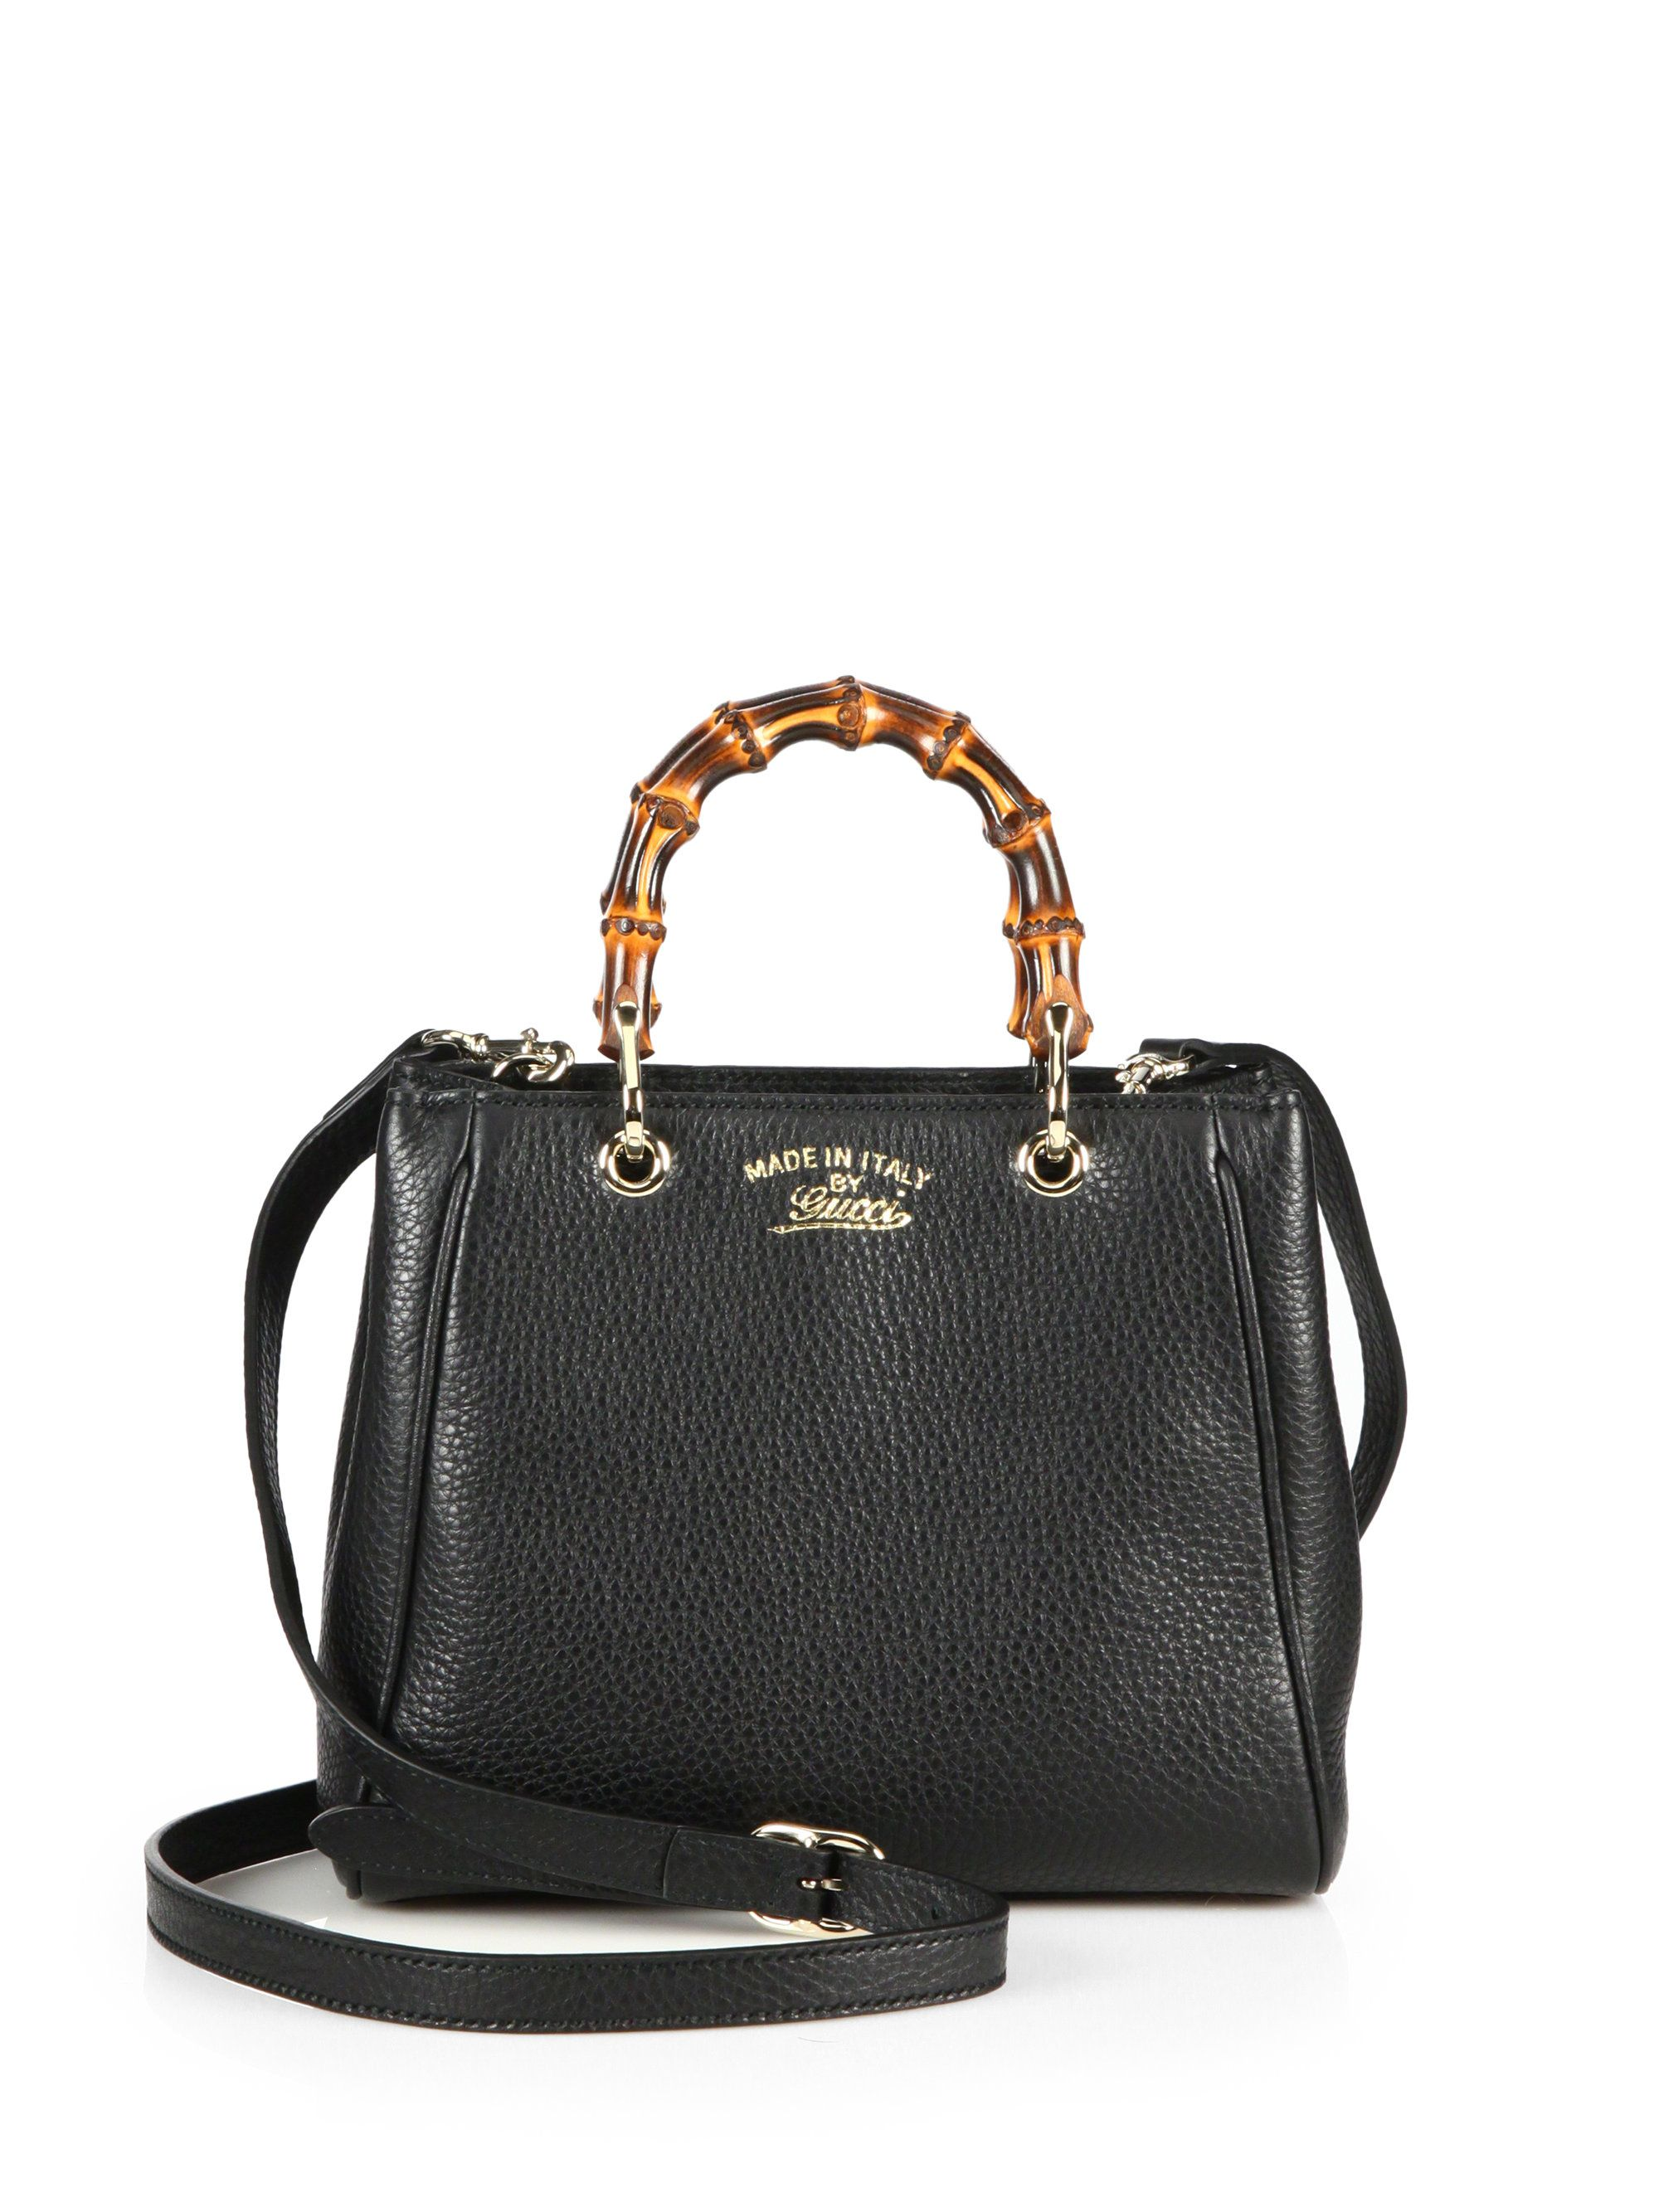 ab86a985334 Gucci Bamboo Shopper Mini Leather Top Handle Bag in Black (NERO-BLACK)